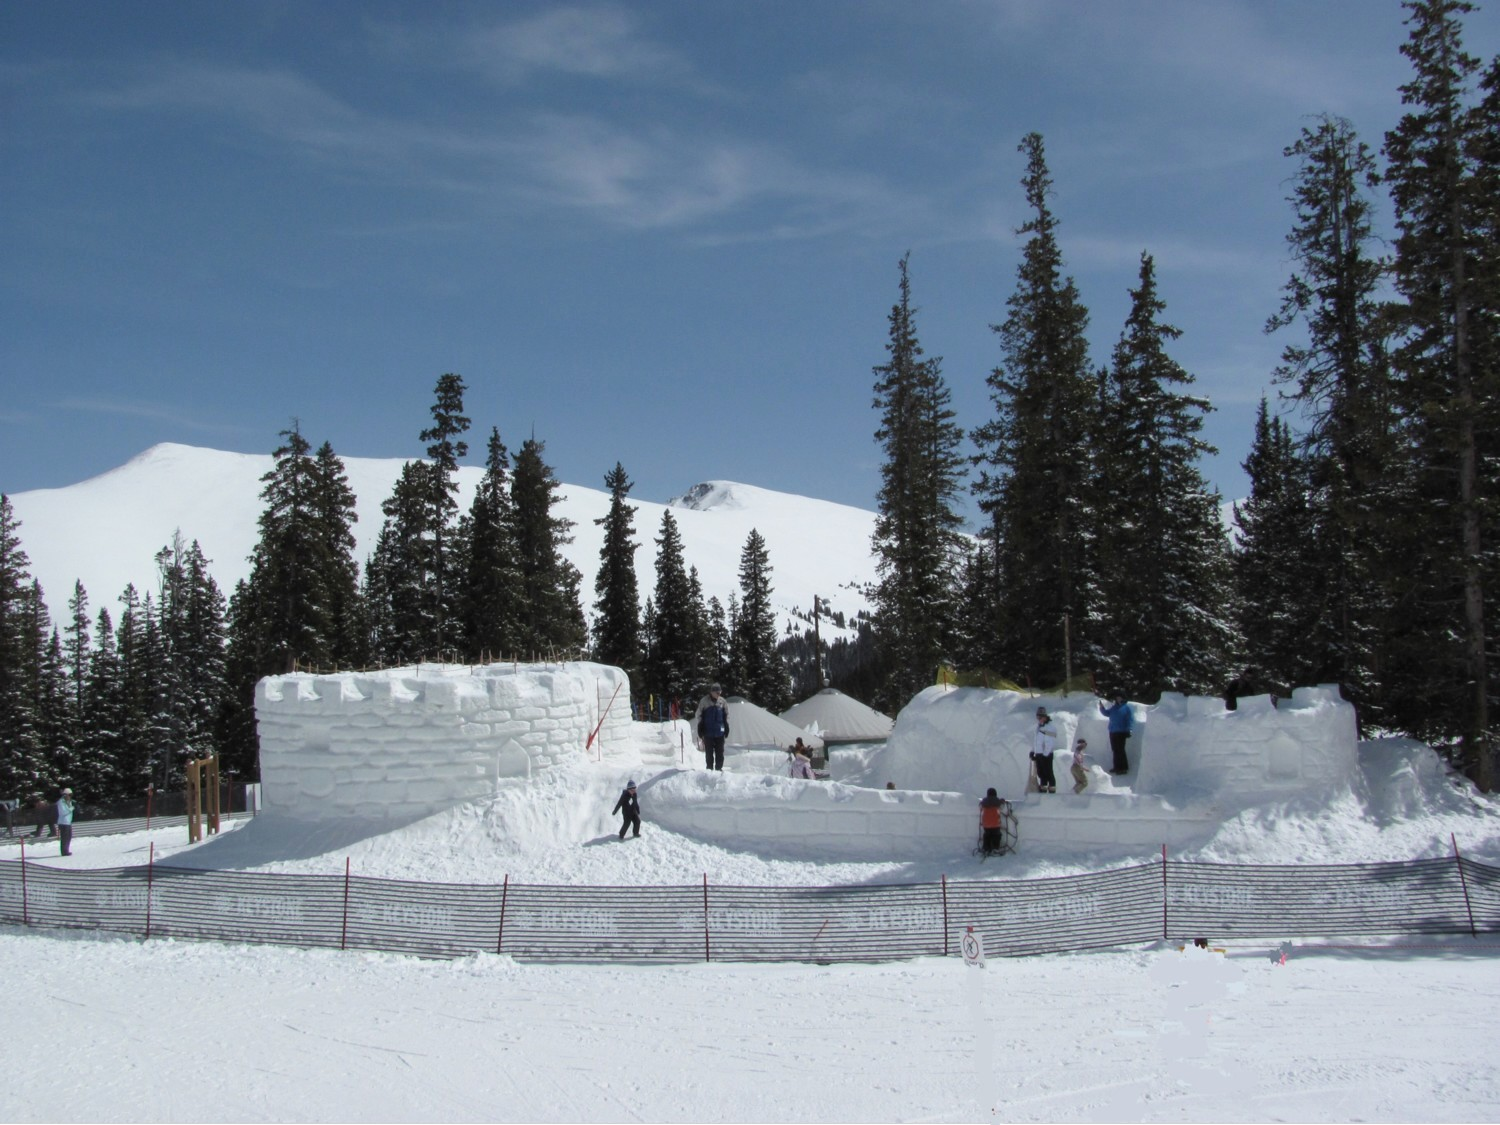 Enjoy unlimited access to Keystone Mountain, Colorado, with its fabulous Kidtopia Fort and kid-friendly activities, with Vail Resorts' Epic Pass © 2016 Karen Rubin/goingplacesfarandnear.com